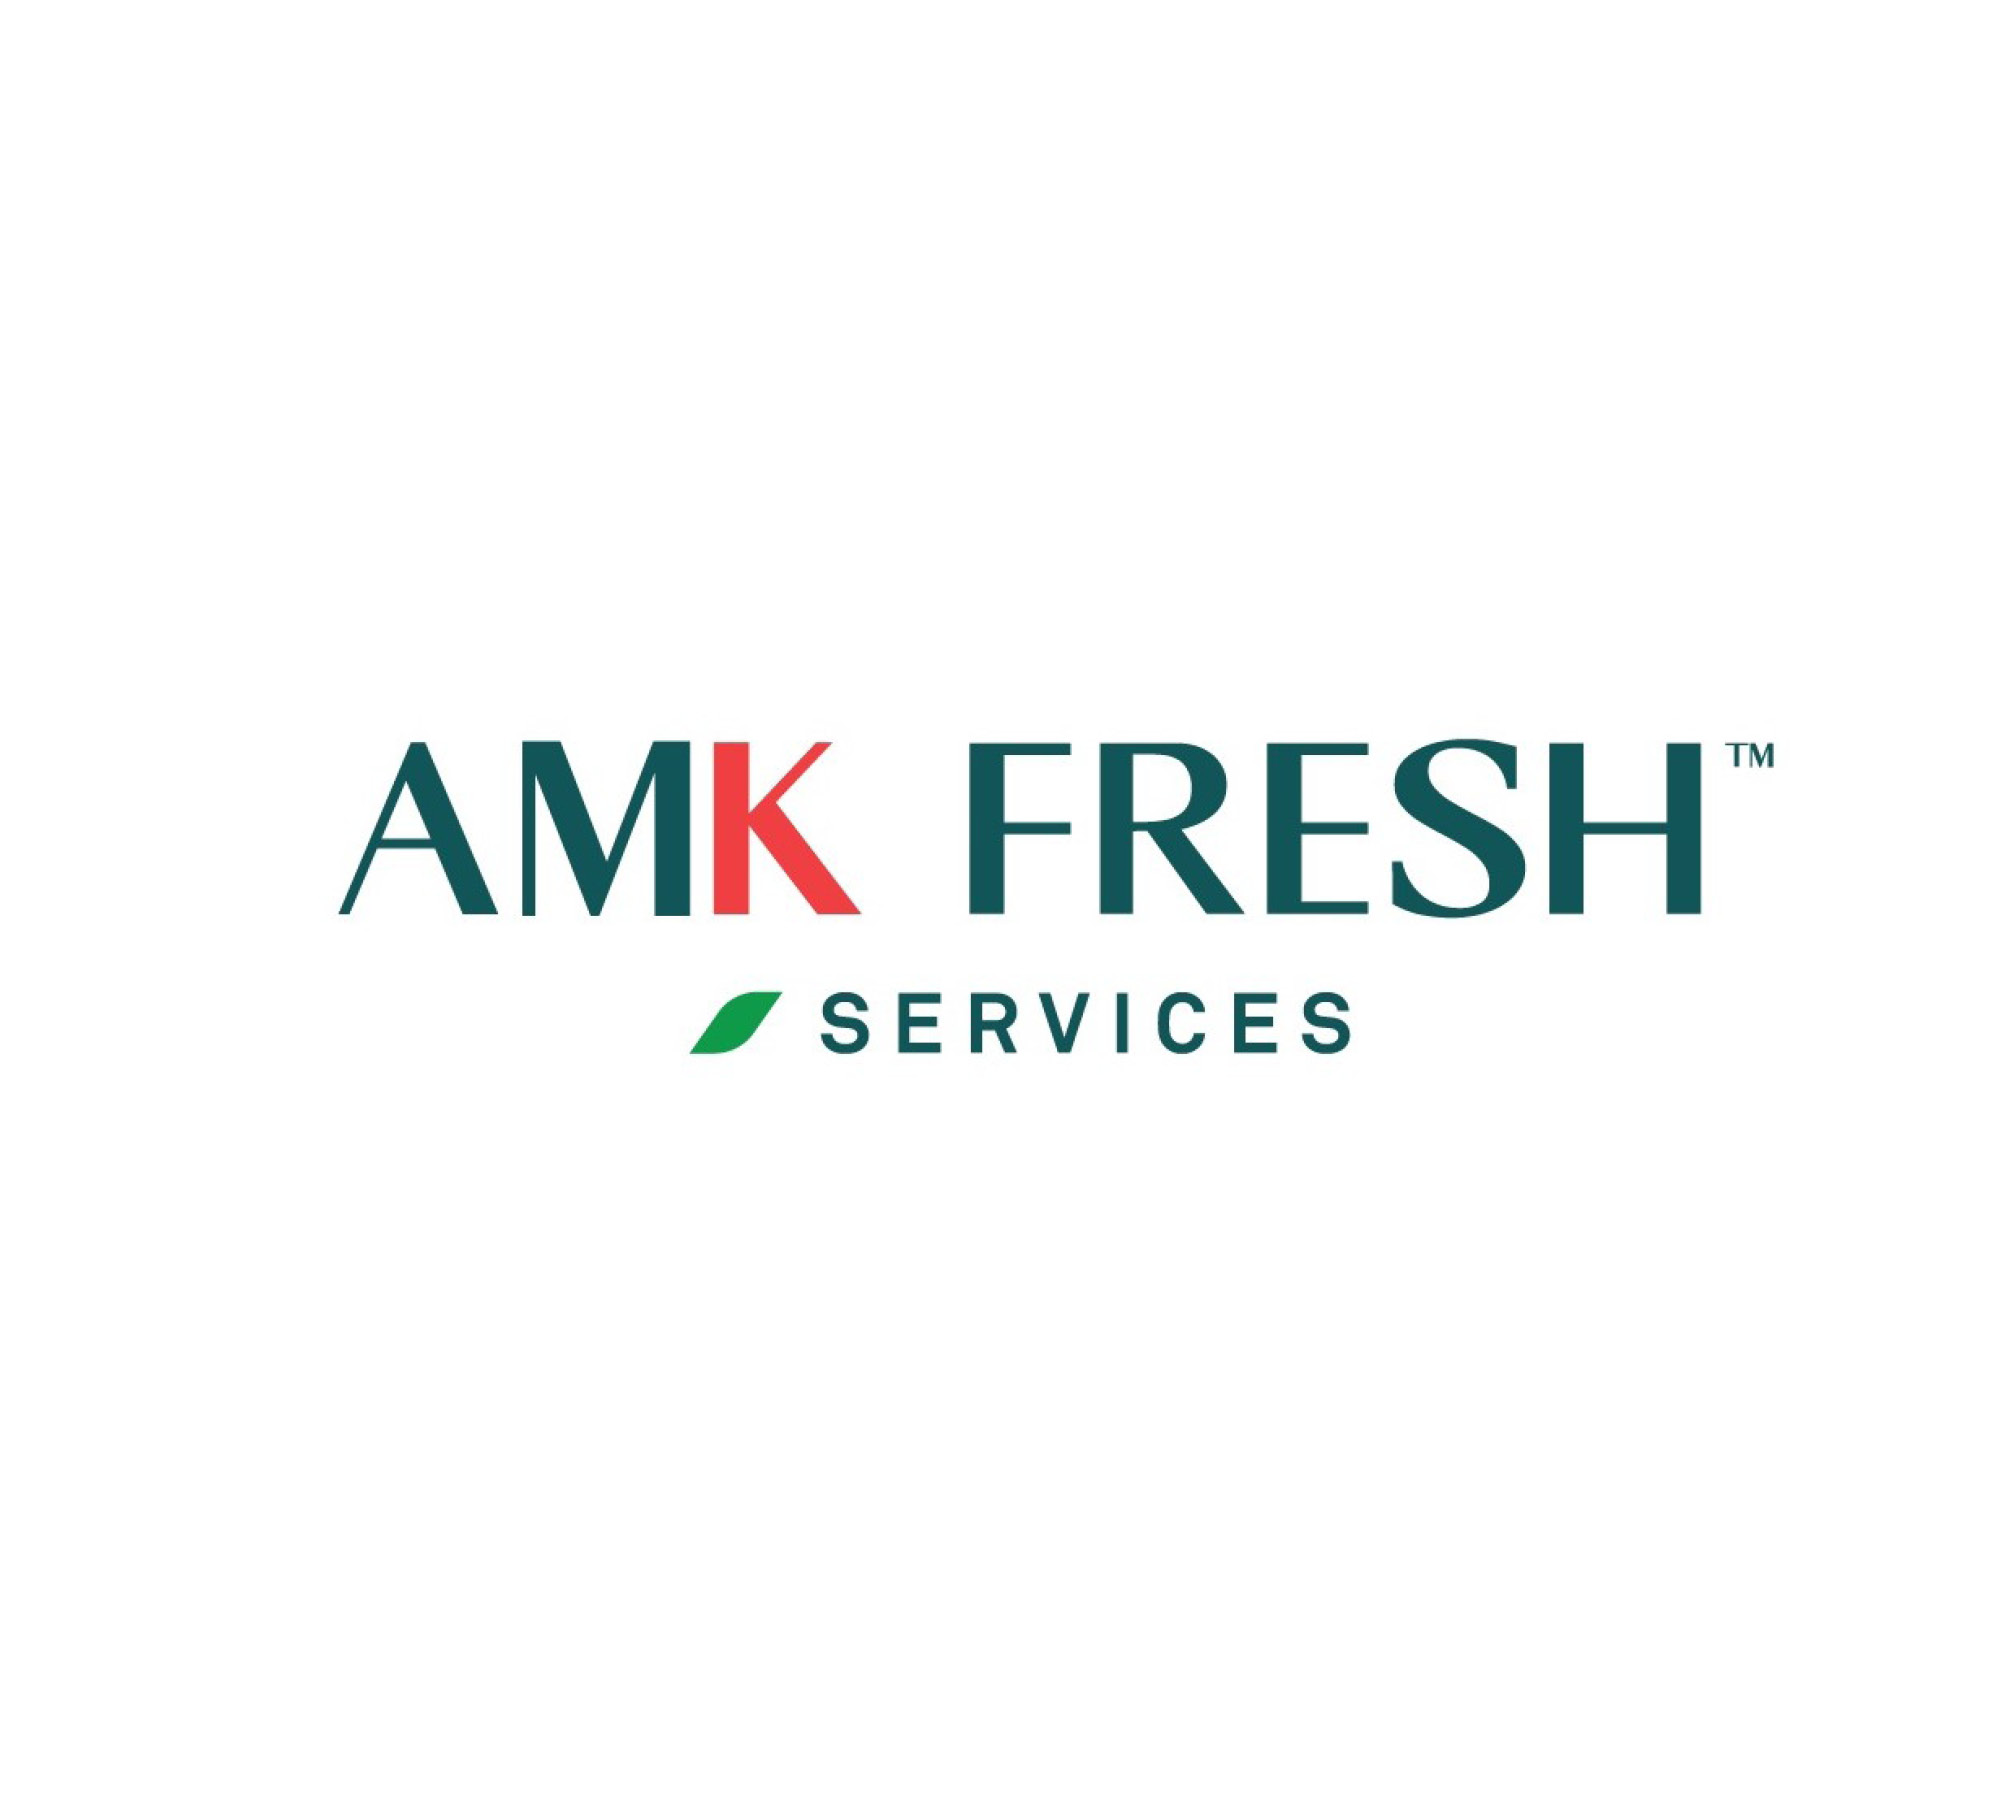 AMK Fruit Services